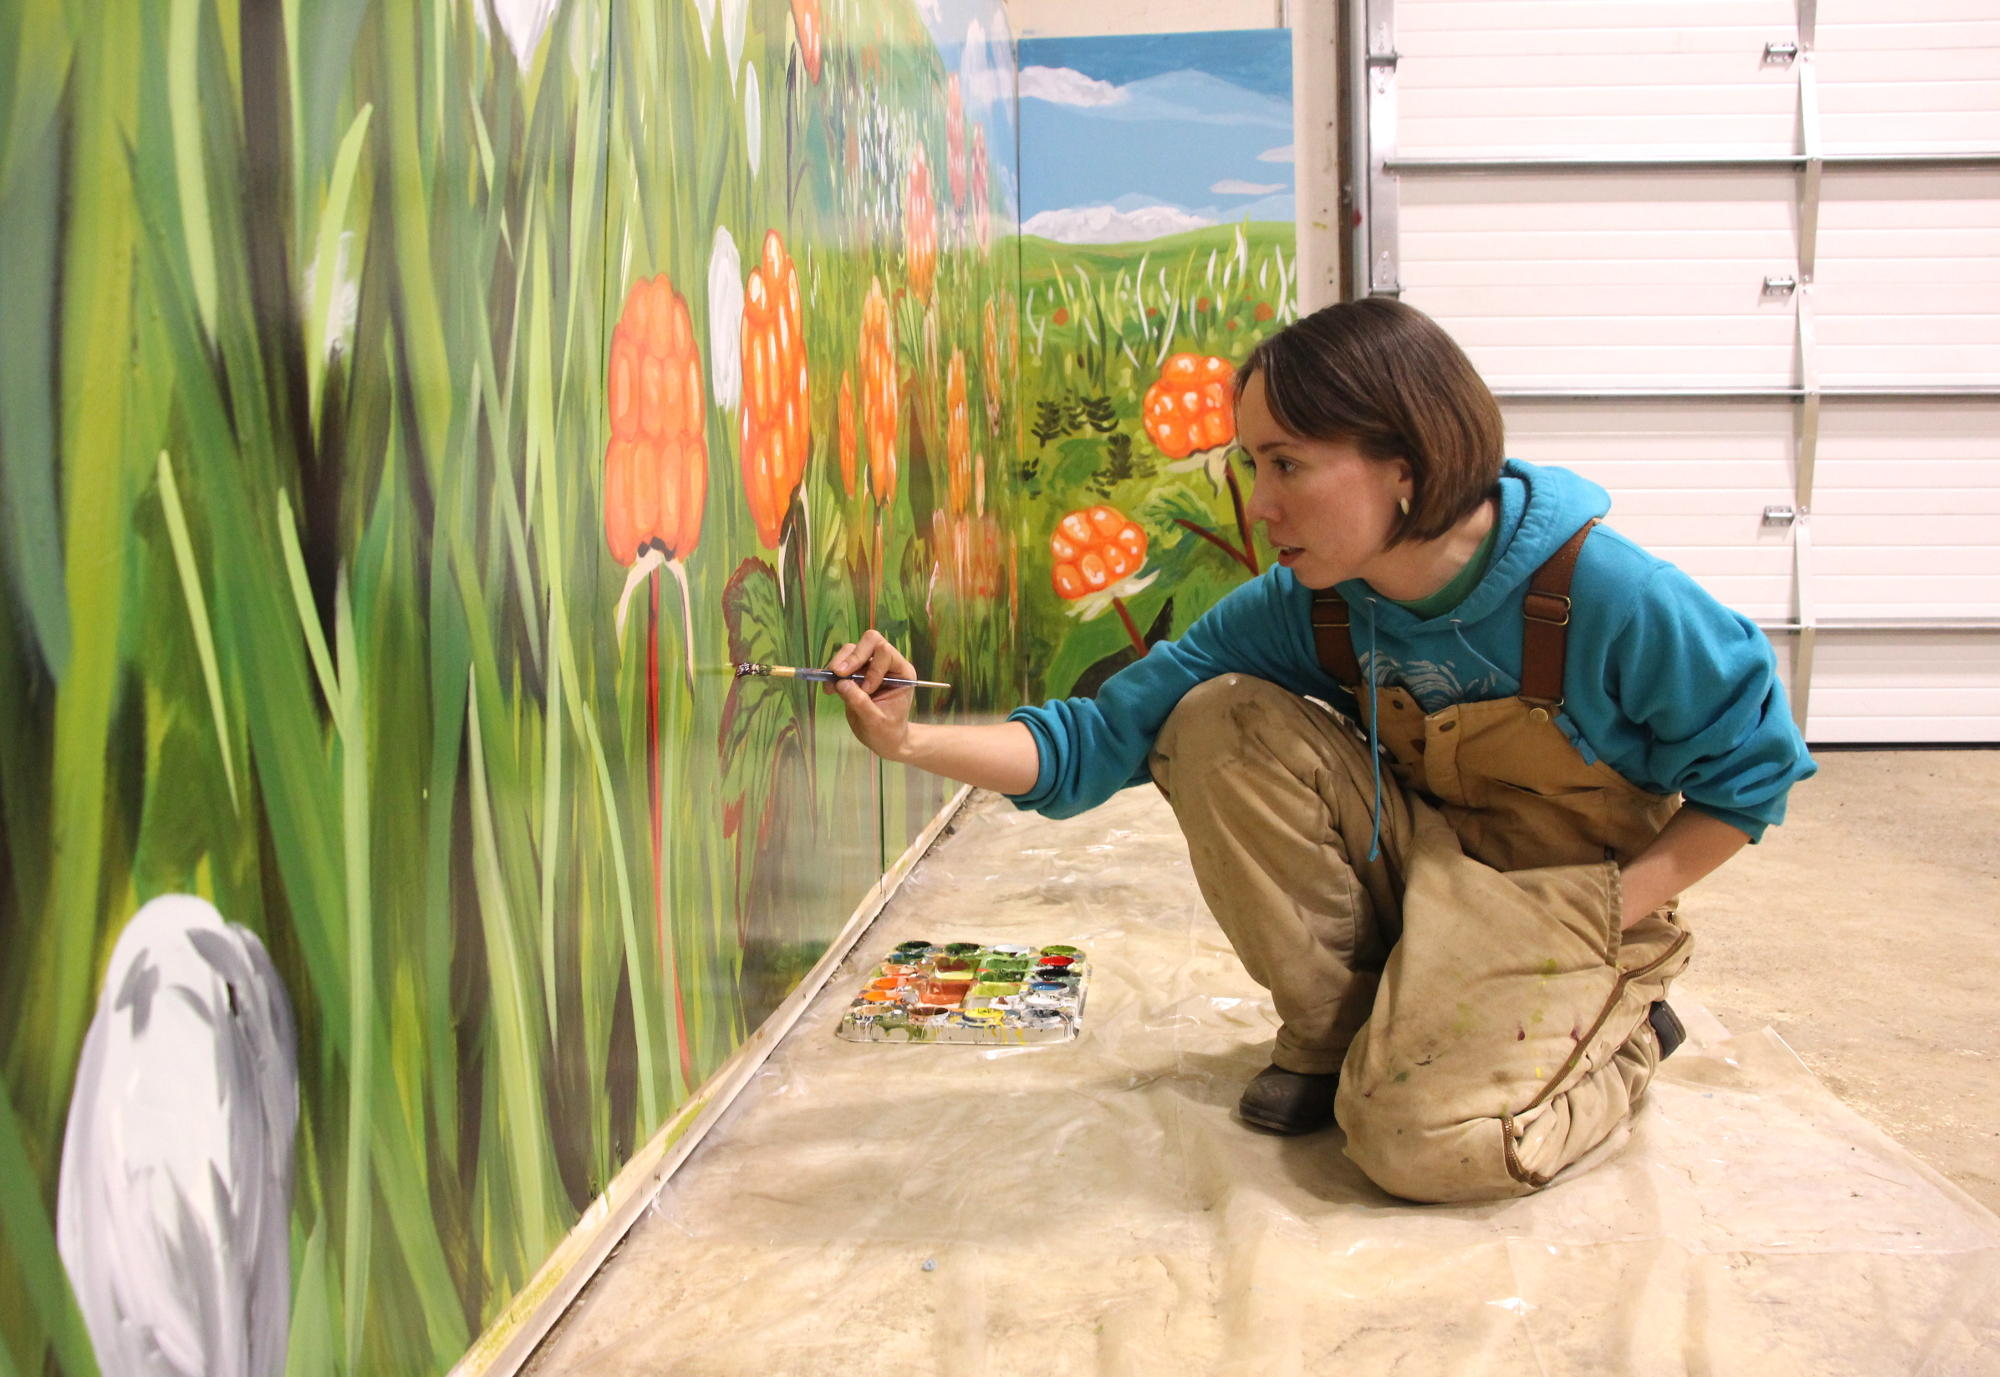 bristol bay muralist paints salmonberries to uplift bethel youth kdlg